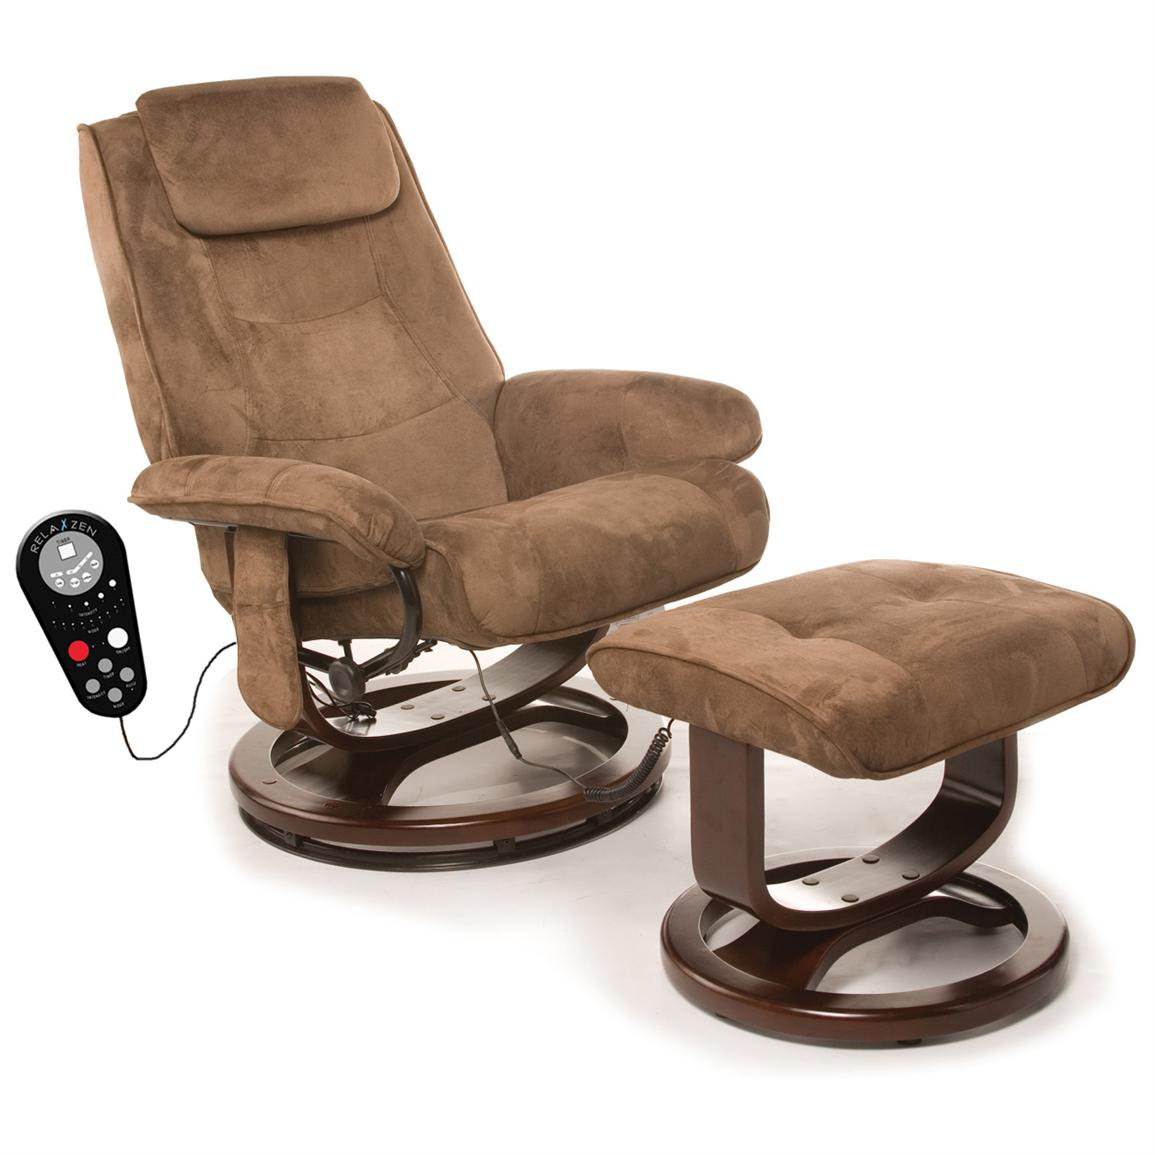 Comfort Products Deluxe Leisure Recliner Chair